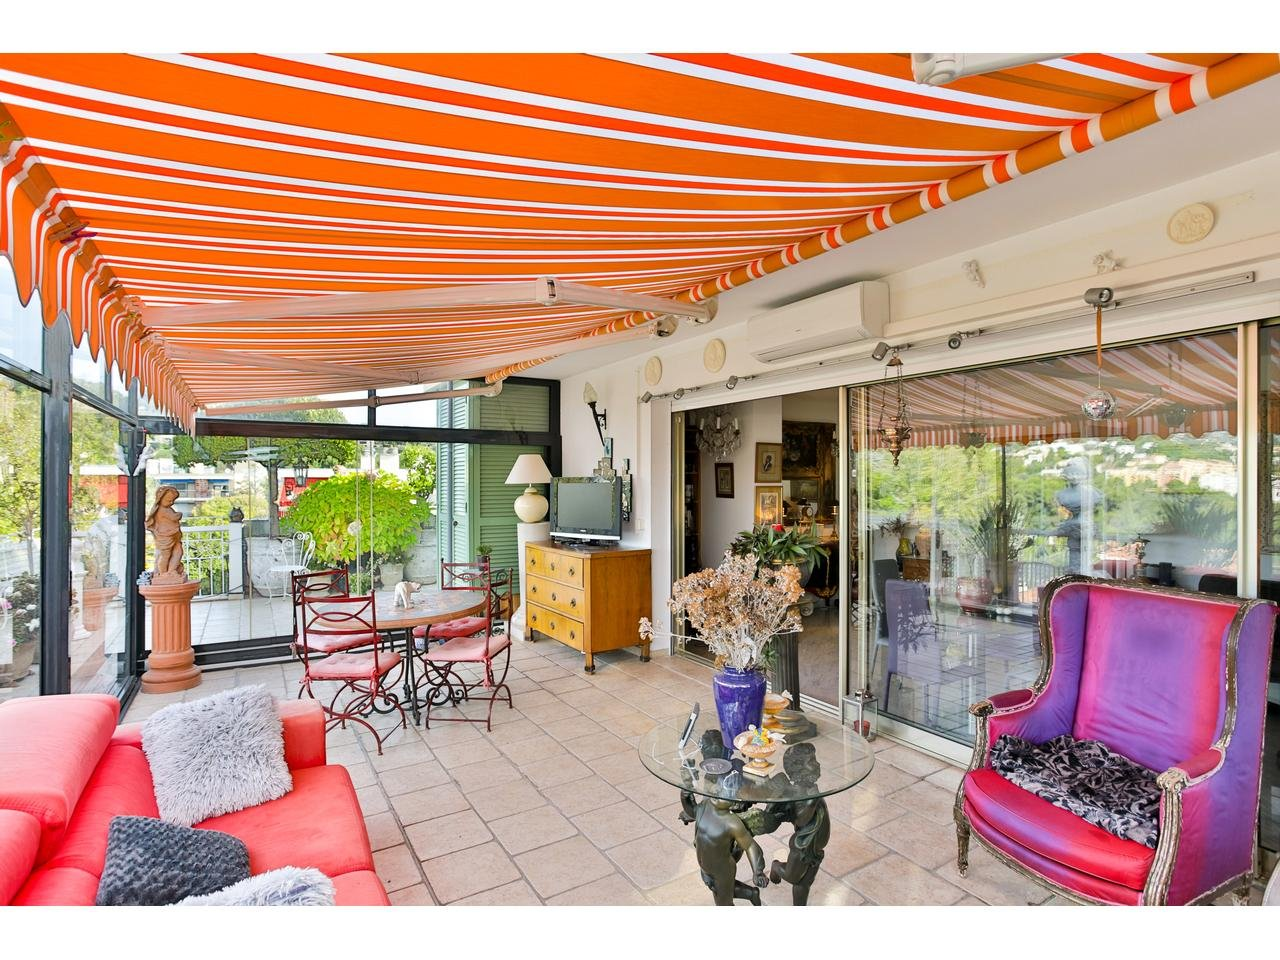 Appartement  2 Rooms 84m2  for sale   830000 €